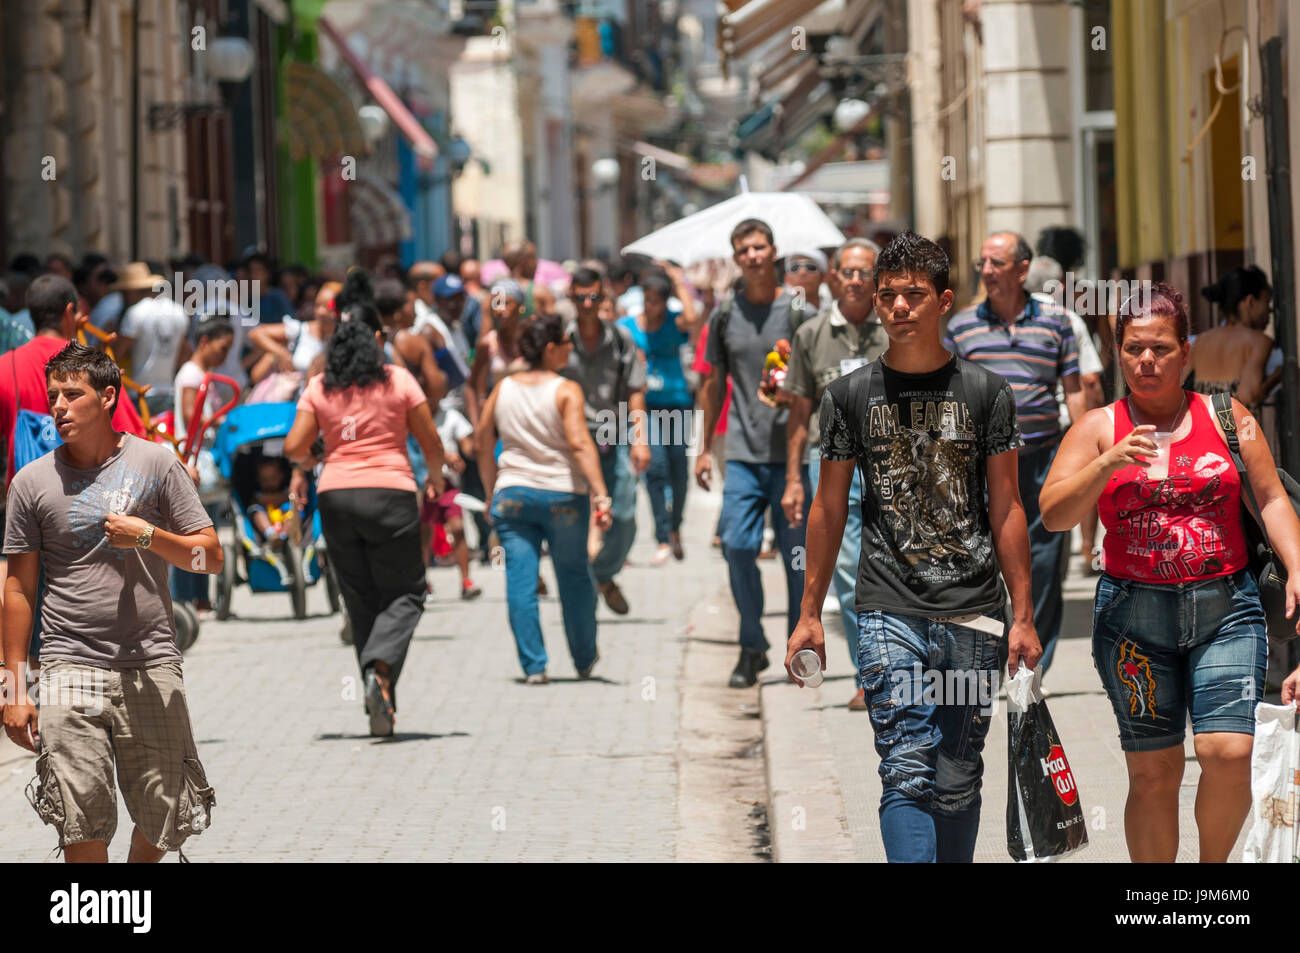 HAVANA - CIRCA JUNE, 2011: Pedestrians crowd the main shopping street, Calle Obispo, in the Habana Vieja neighborhood. - Stock Image